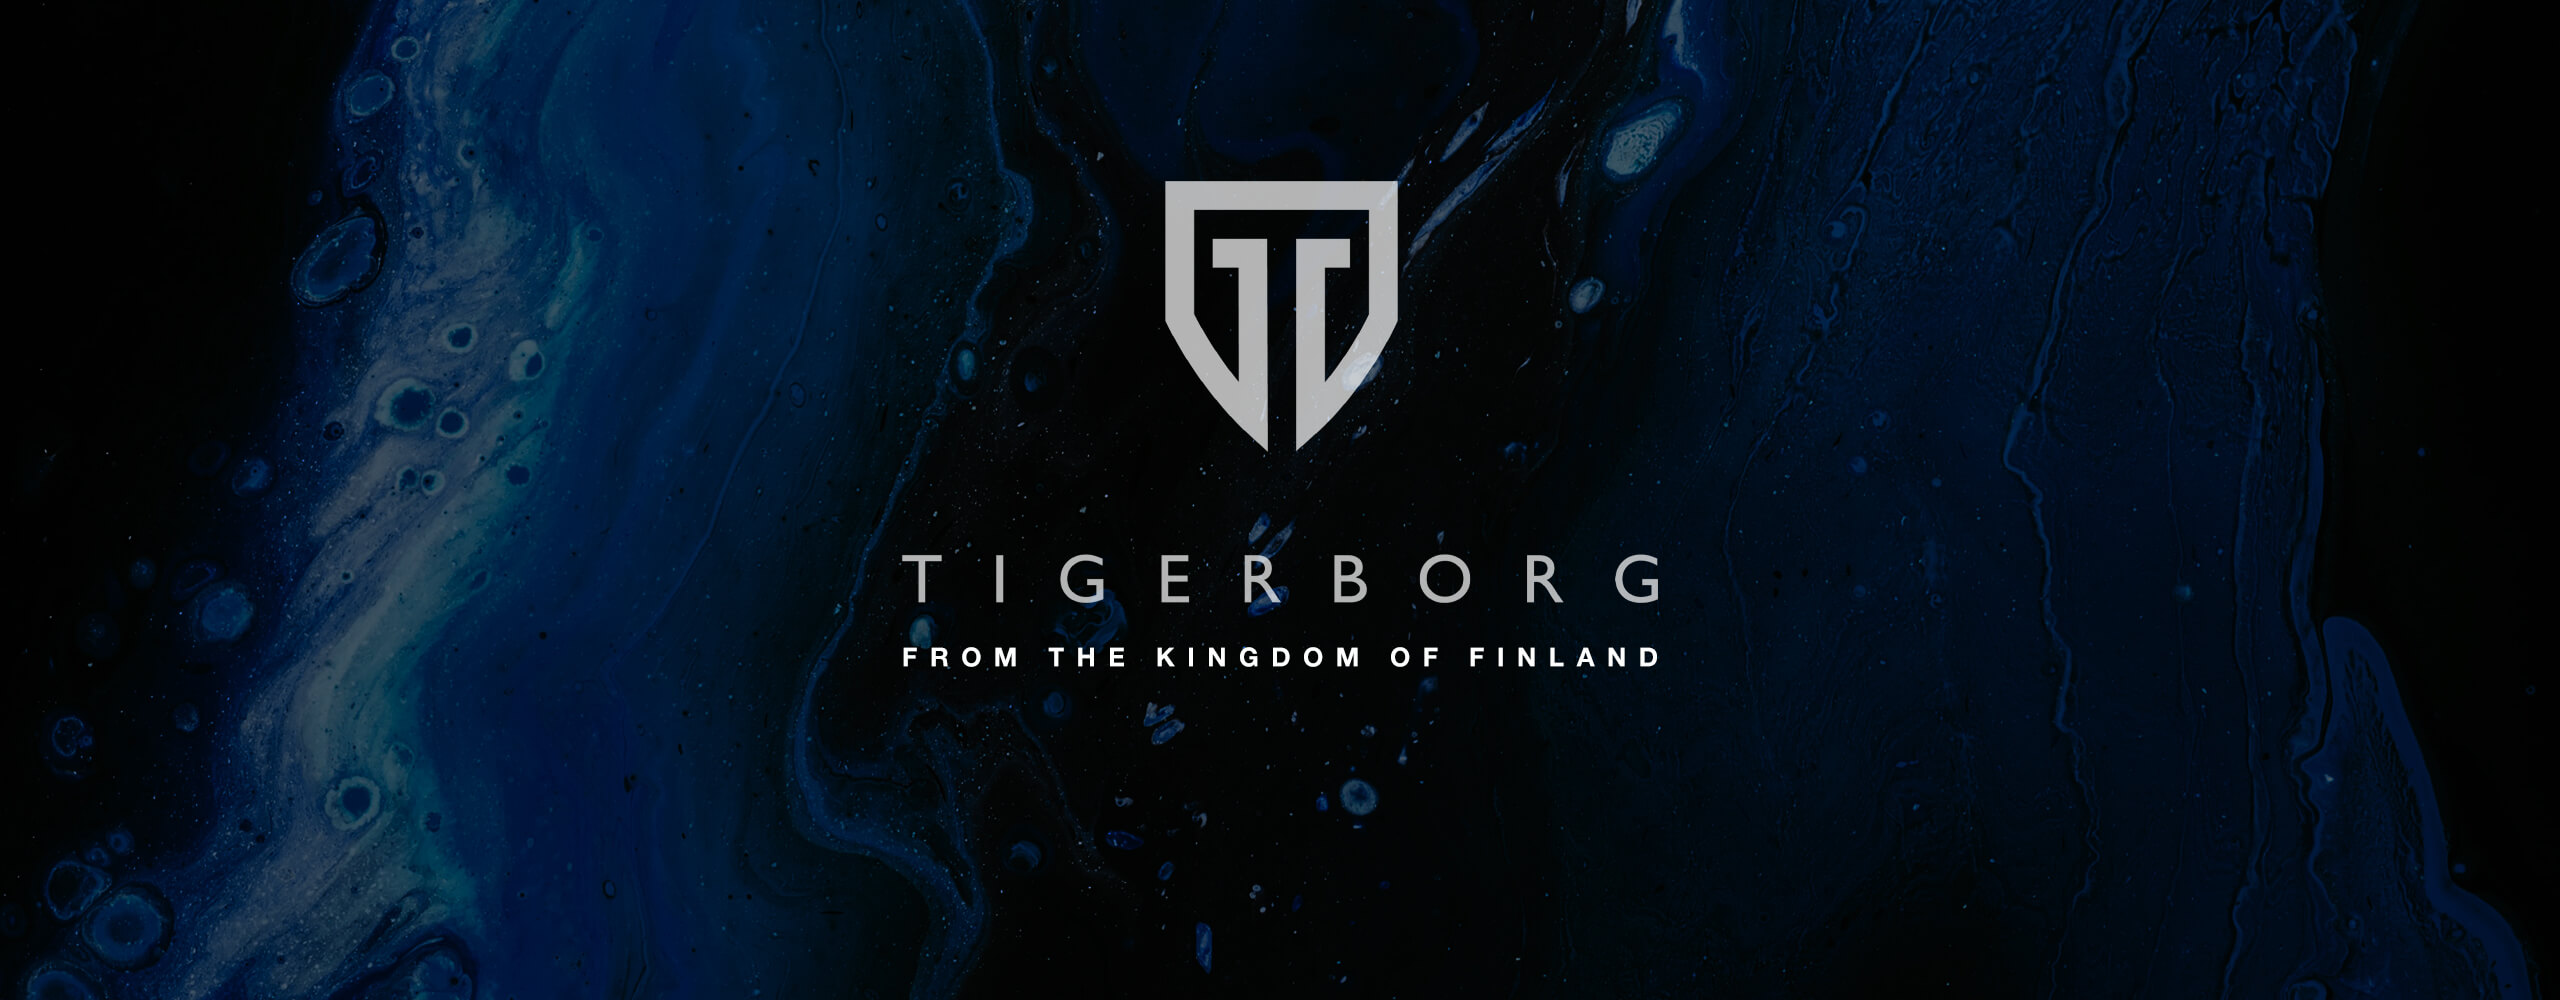 Tigerborg - From the kingdom of Finland